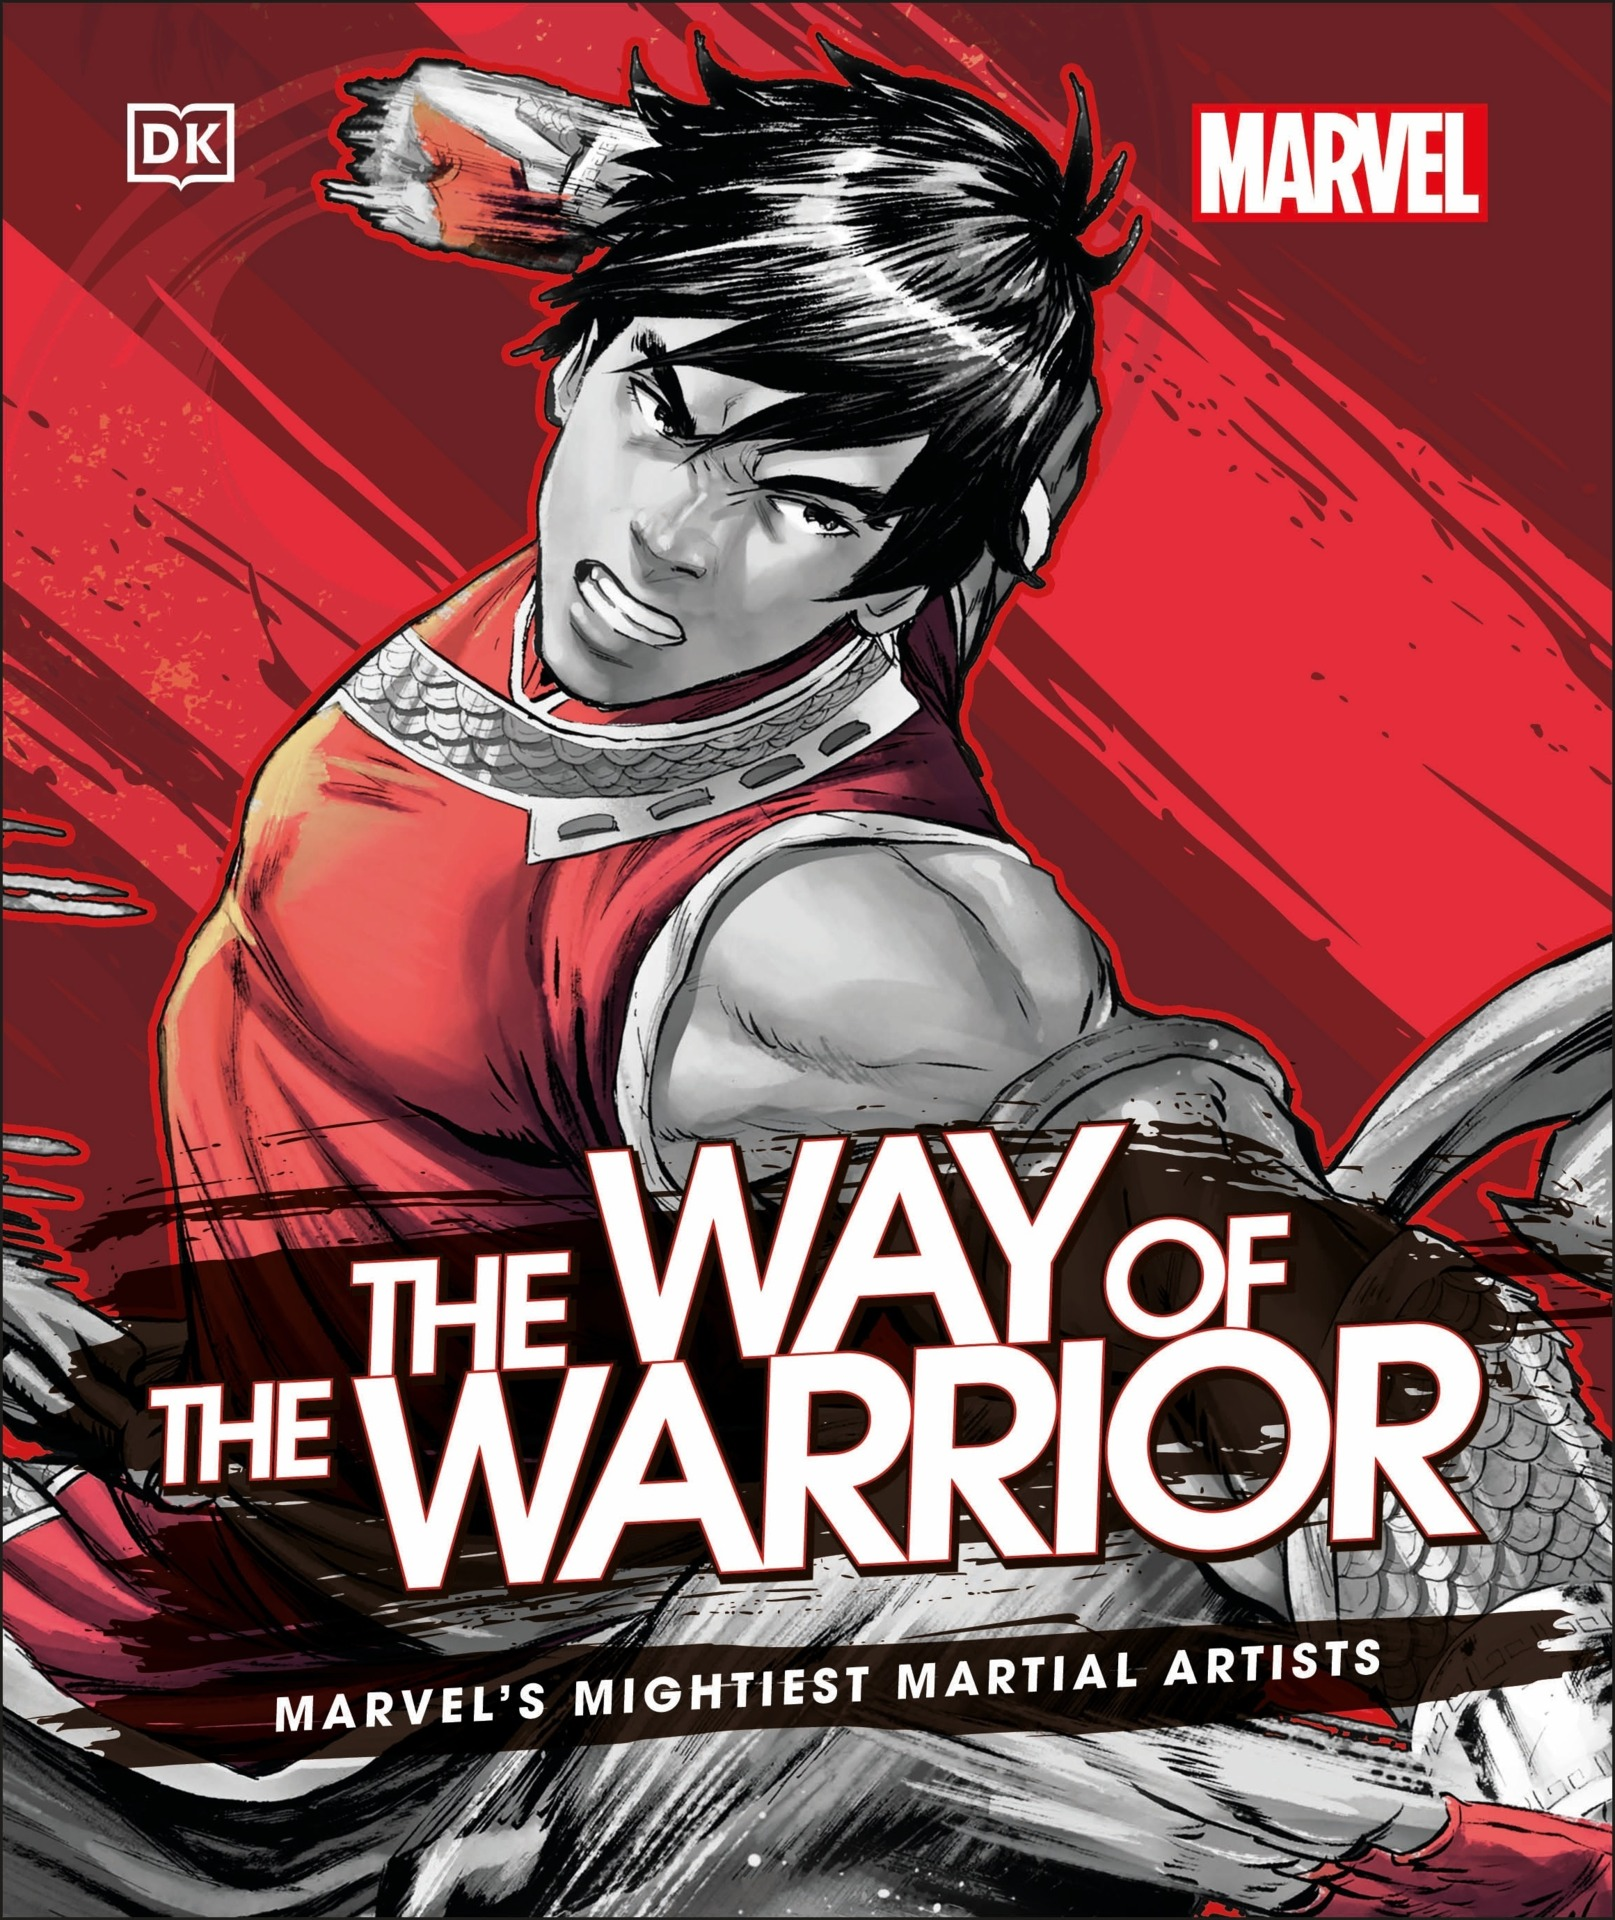 Marvel the Way of the Warrior: Marvel's Mightiest Martial Artists